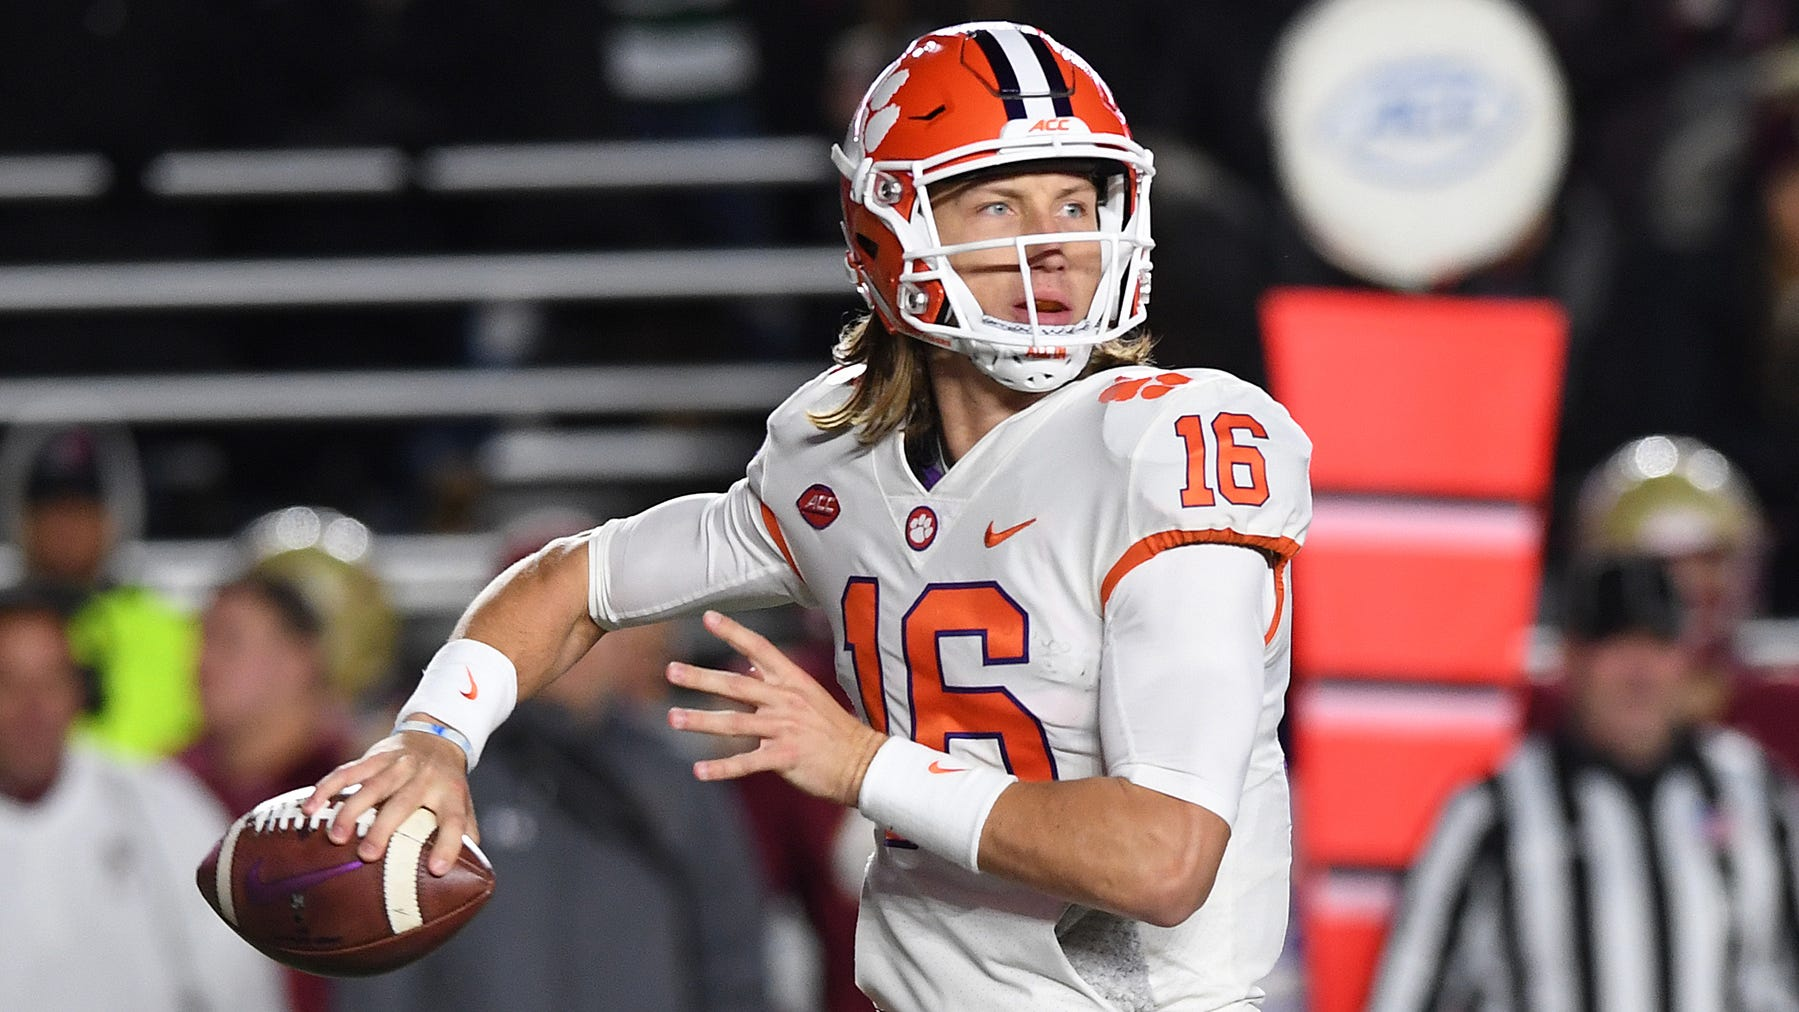 Clemson quarterback Trevor Lawrence (16) passes against Boston College during the 1st quarter at Boston College's Alumni Stadium in Chestnut Hill, MA. Saturday, November 10, 2018.